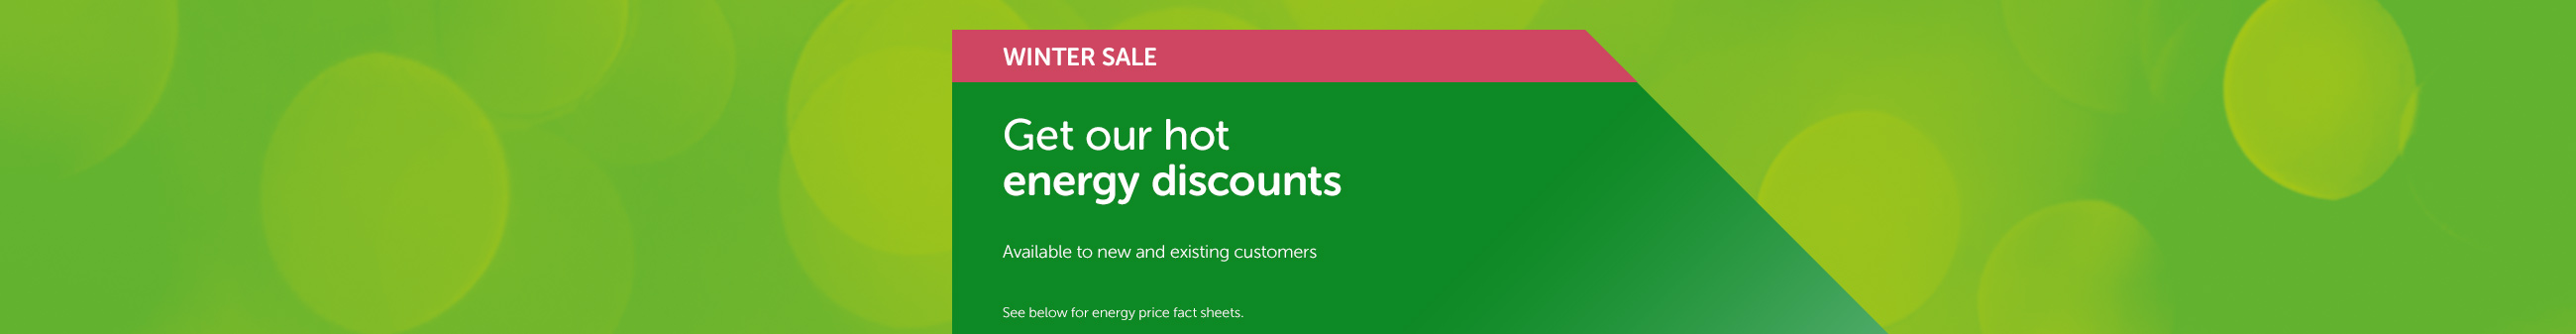 Get our hot energy discount - Available to new and existing customers